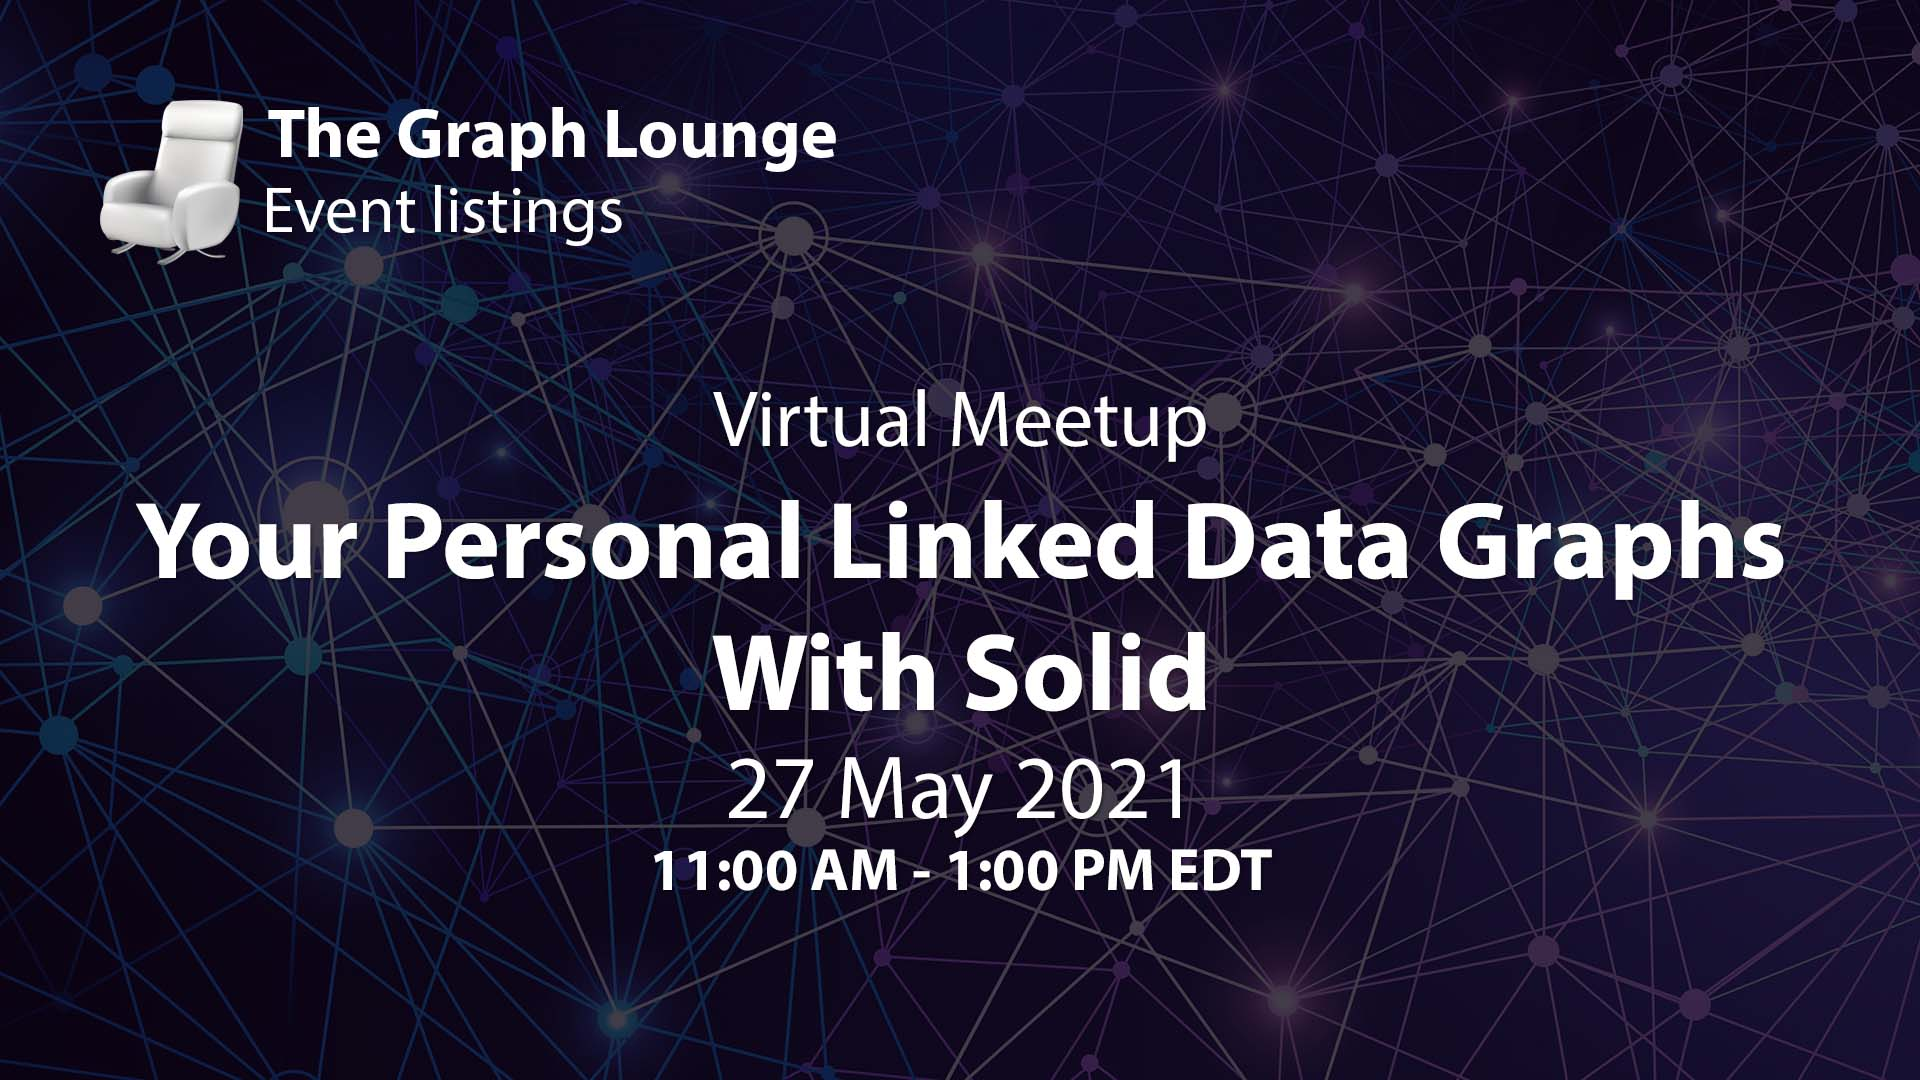 Your Personal Linked Data Graphs With Solid